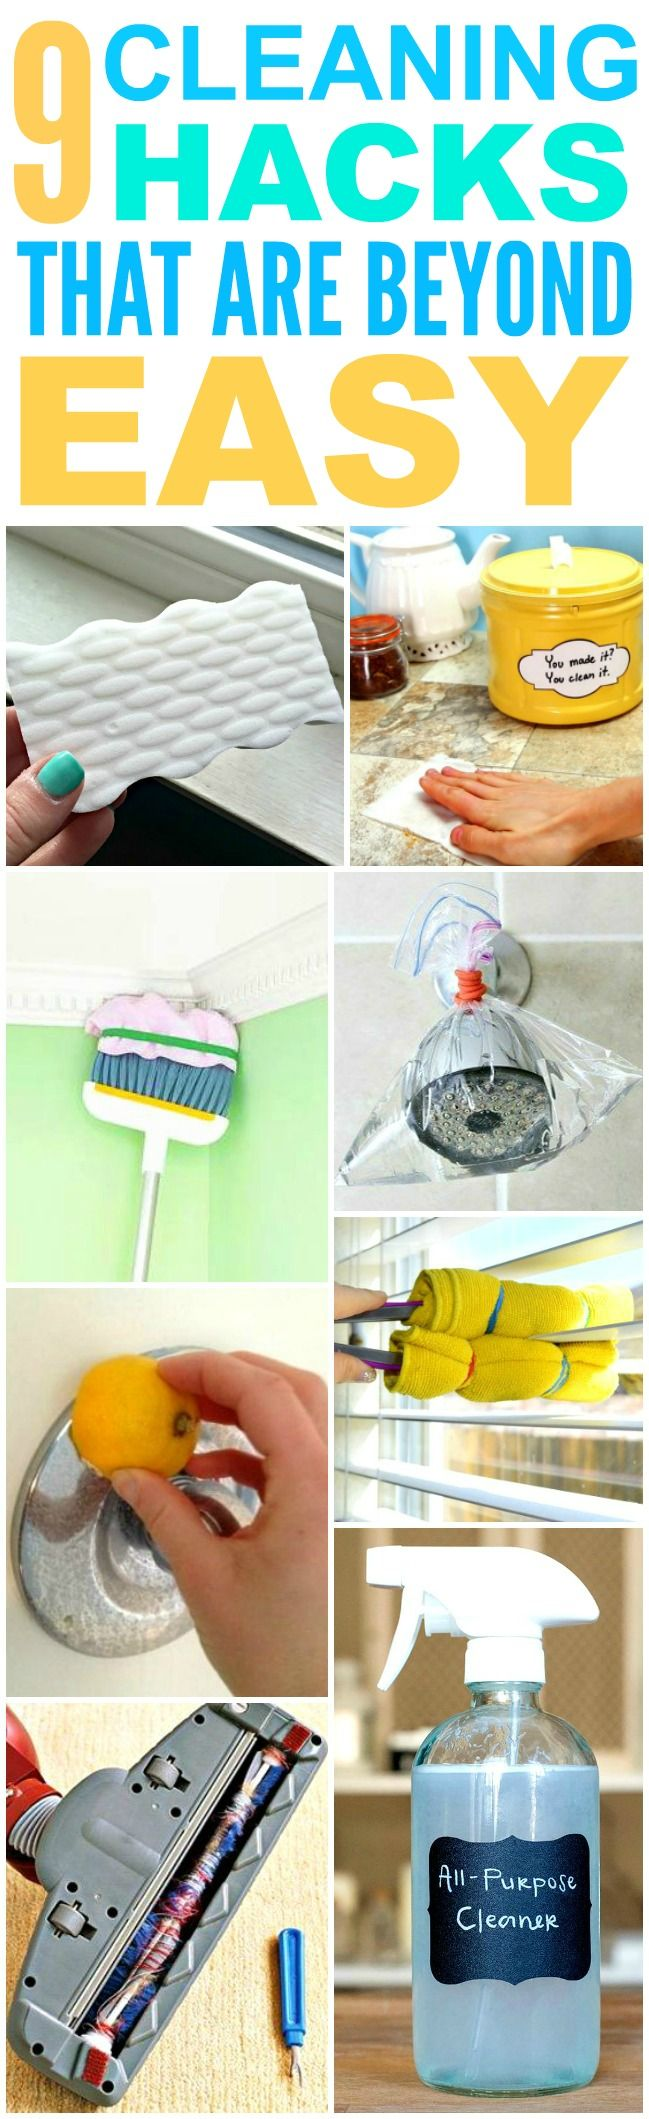 These 9 cleaning hacks for every room in the house are THE BEST! I'm so happy I found these GREAT tips! Now I have fast and easy home cleaning tips and tricks! Definitely pinning!